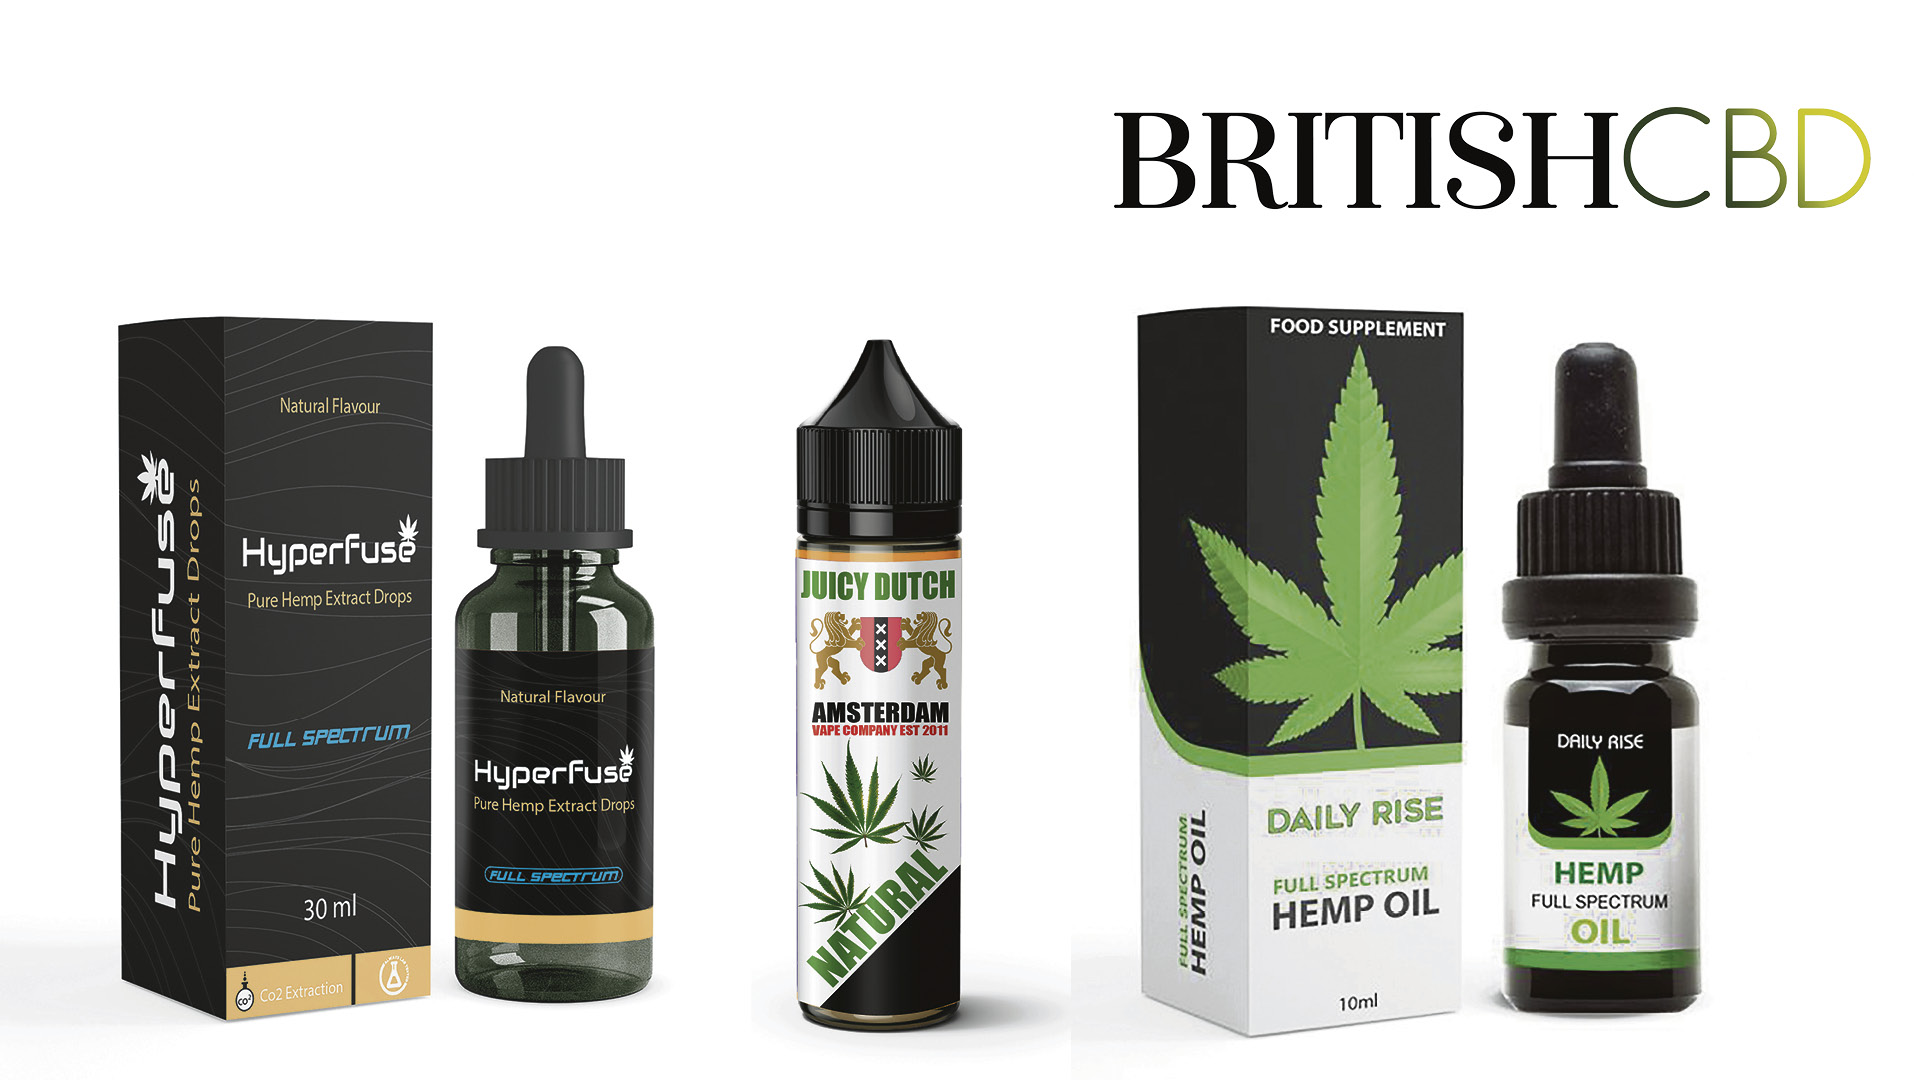 Voucher to spend on quality CBD products